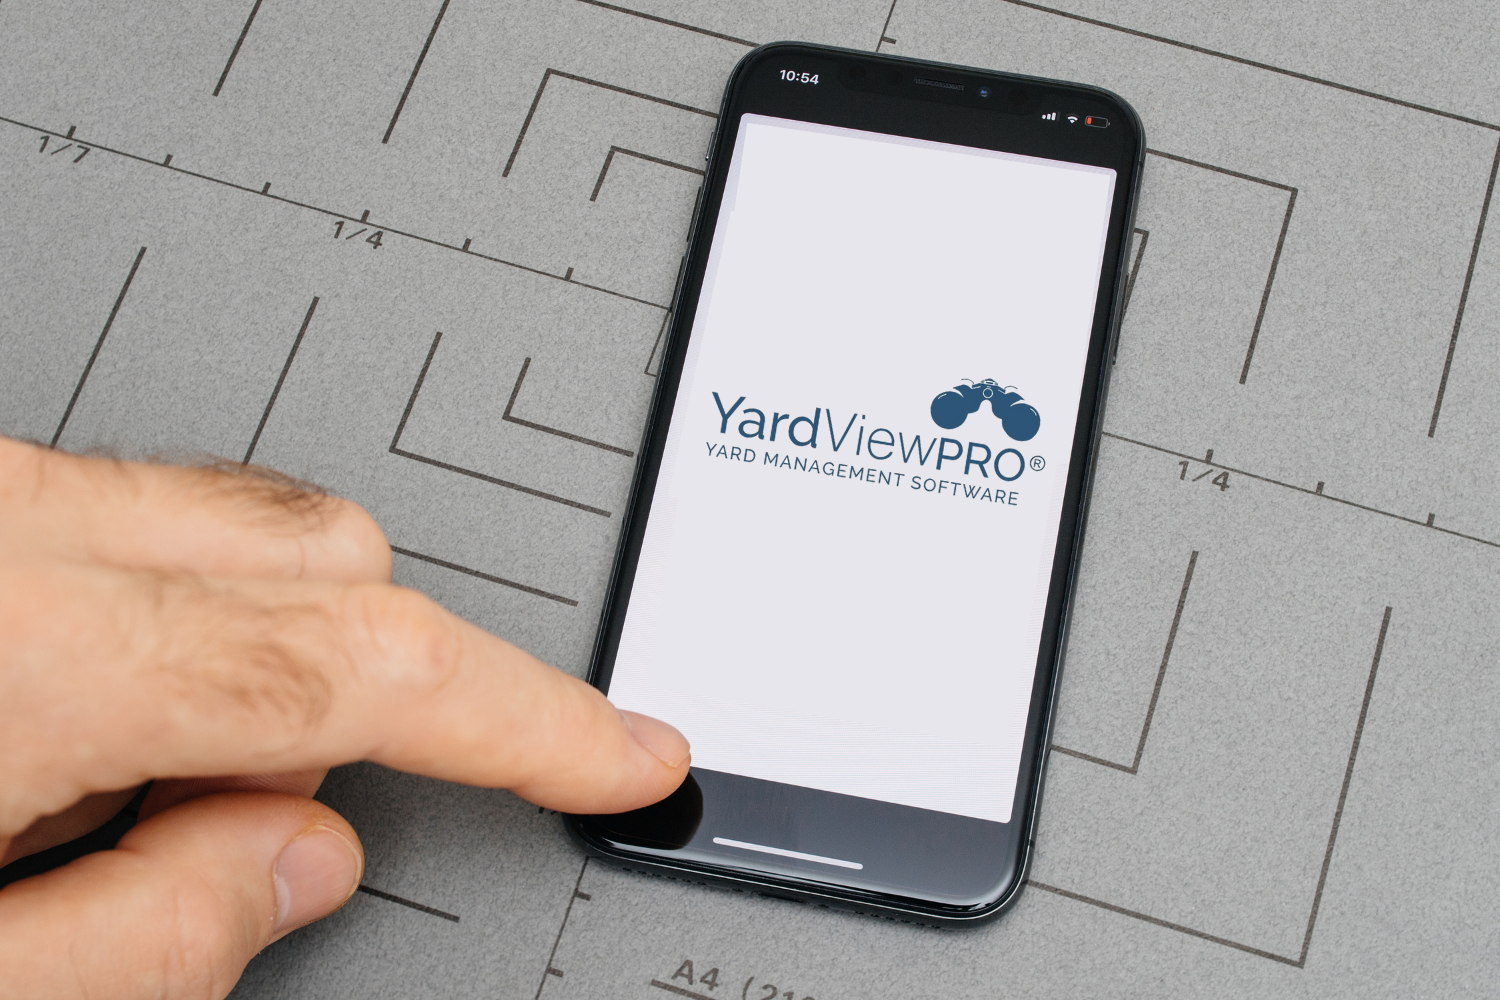 Image of a hand on a piece of paper designed like a target selecting a YMS system by touching a phone call button with the YardView Pro Yard Management Software logo on the screen